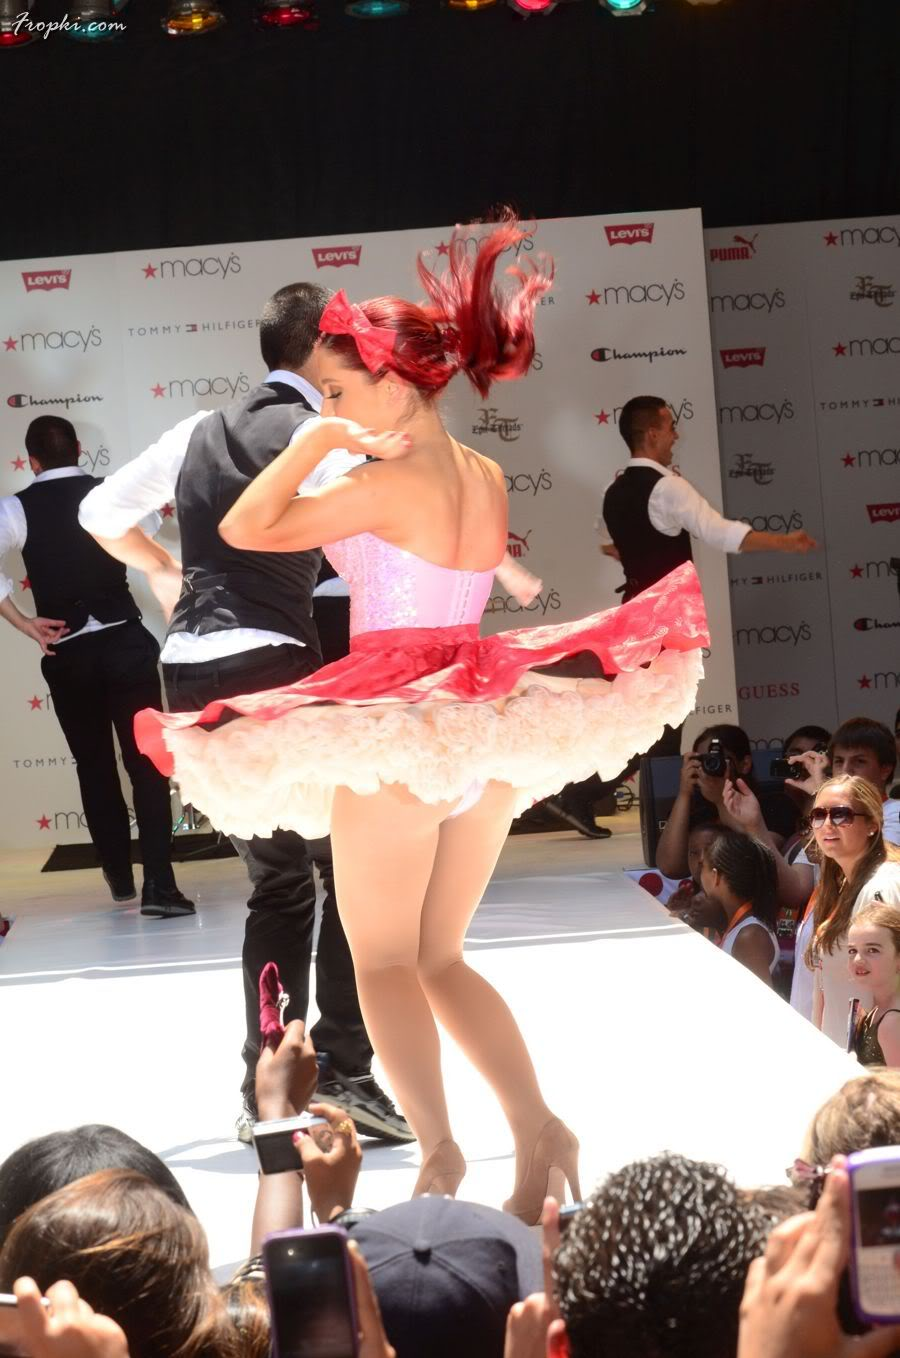 Ariana Grande OOPS Moments at Macy's Annual Summer